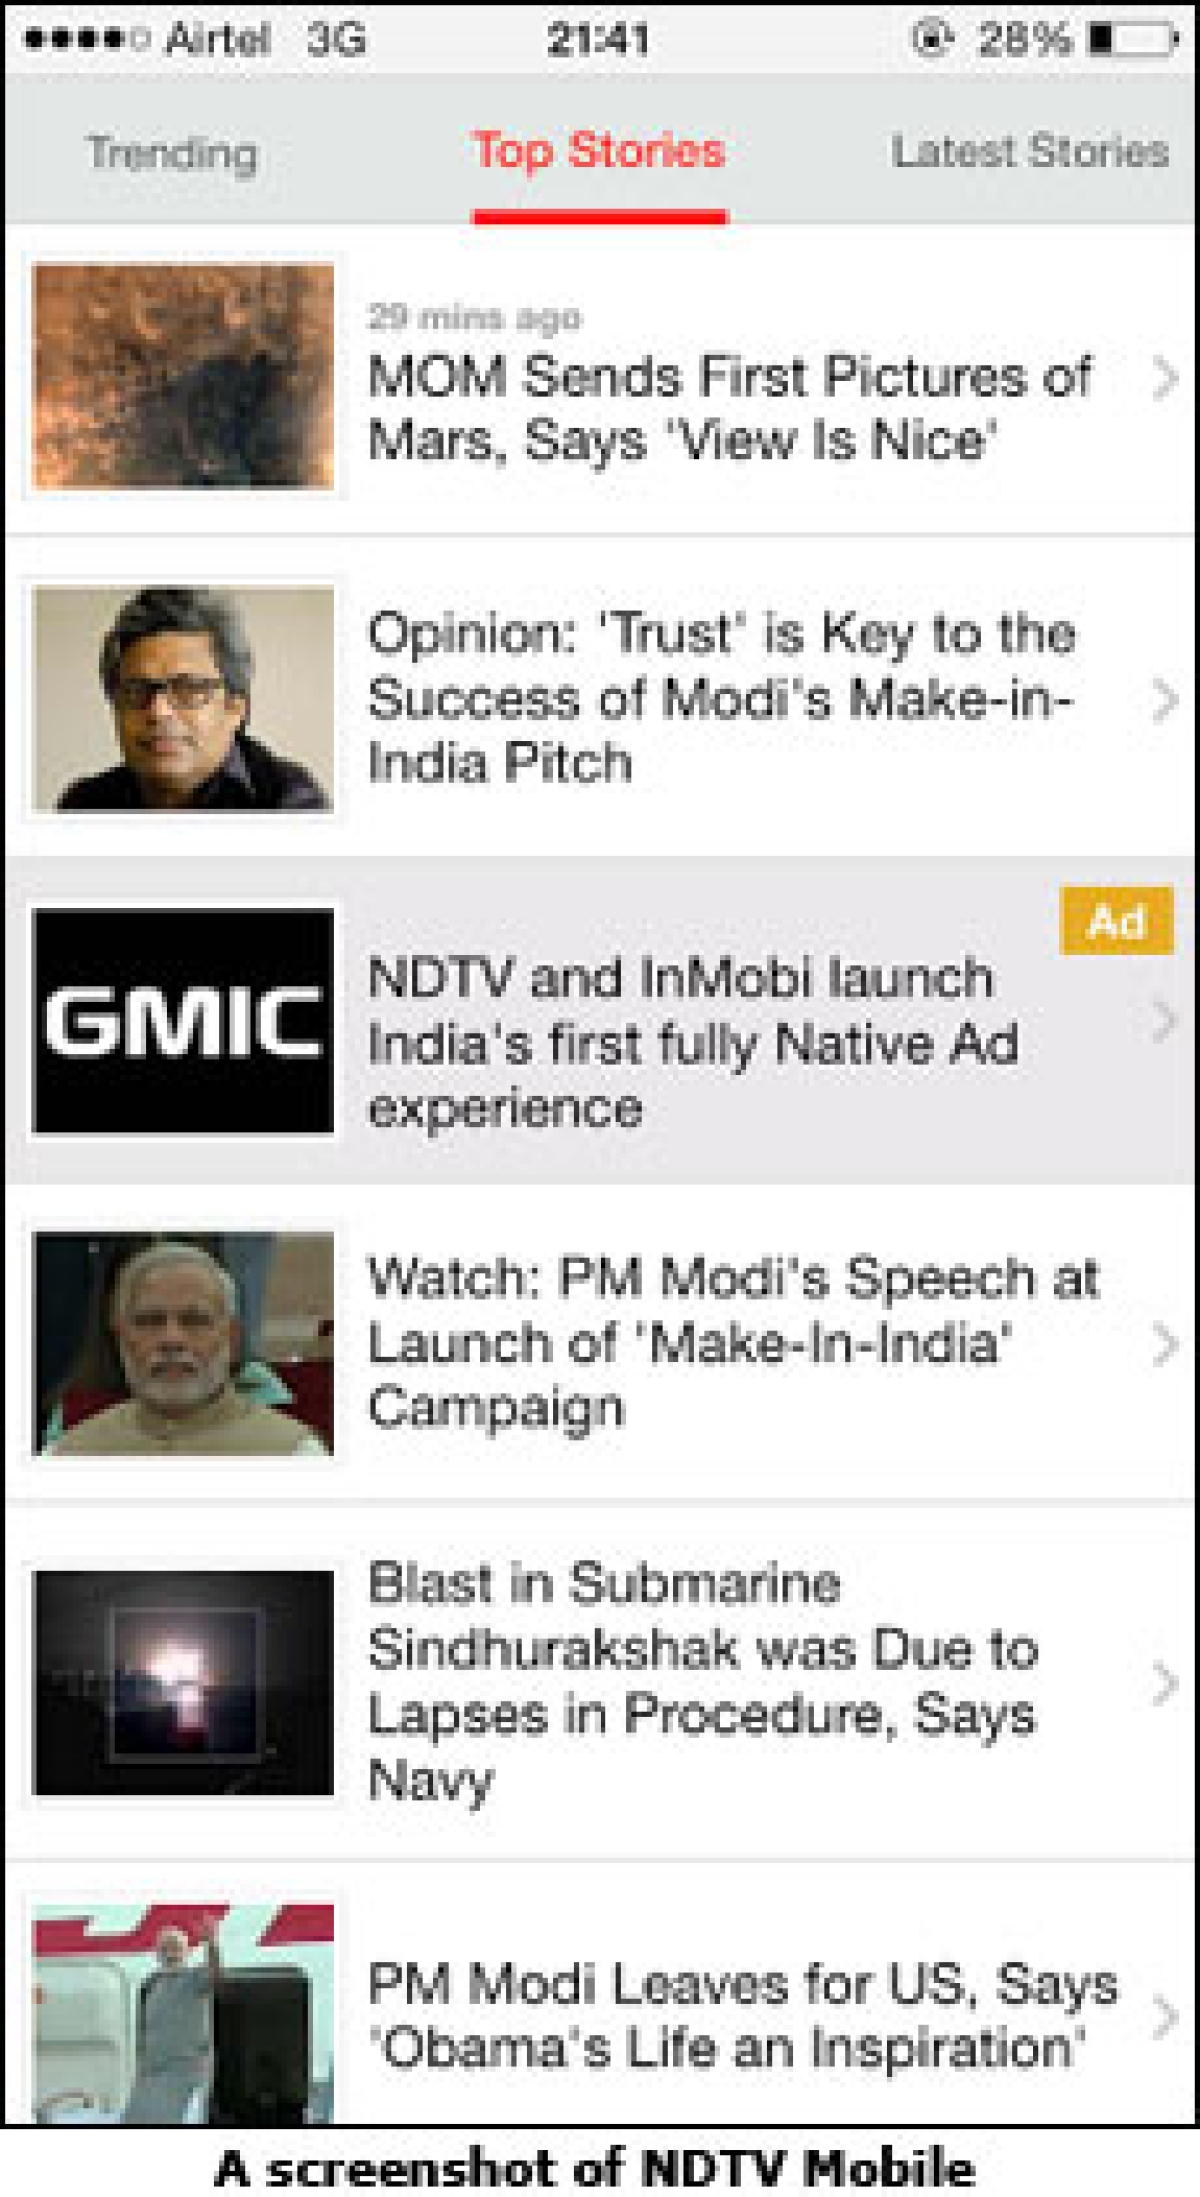 InMobi and NDTV Bring Home Native Ads